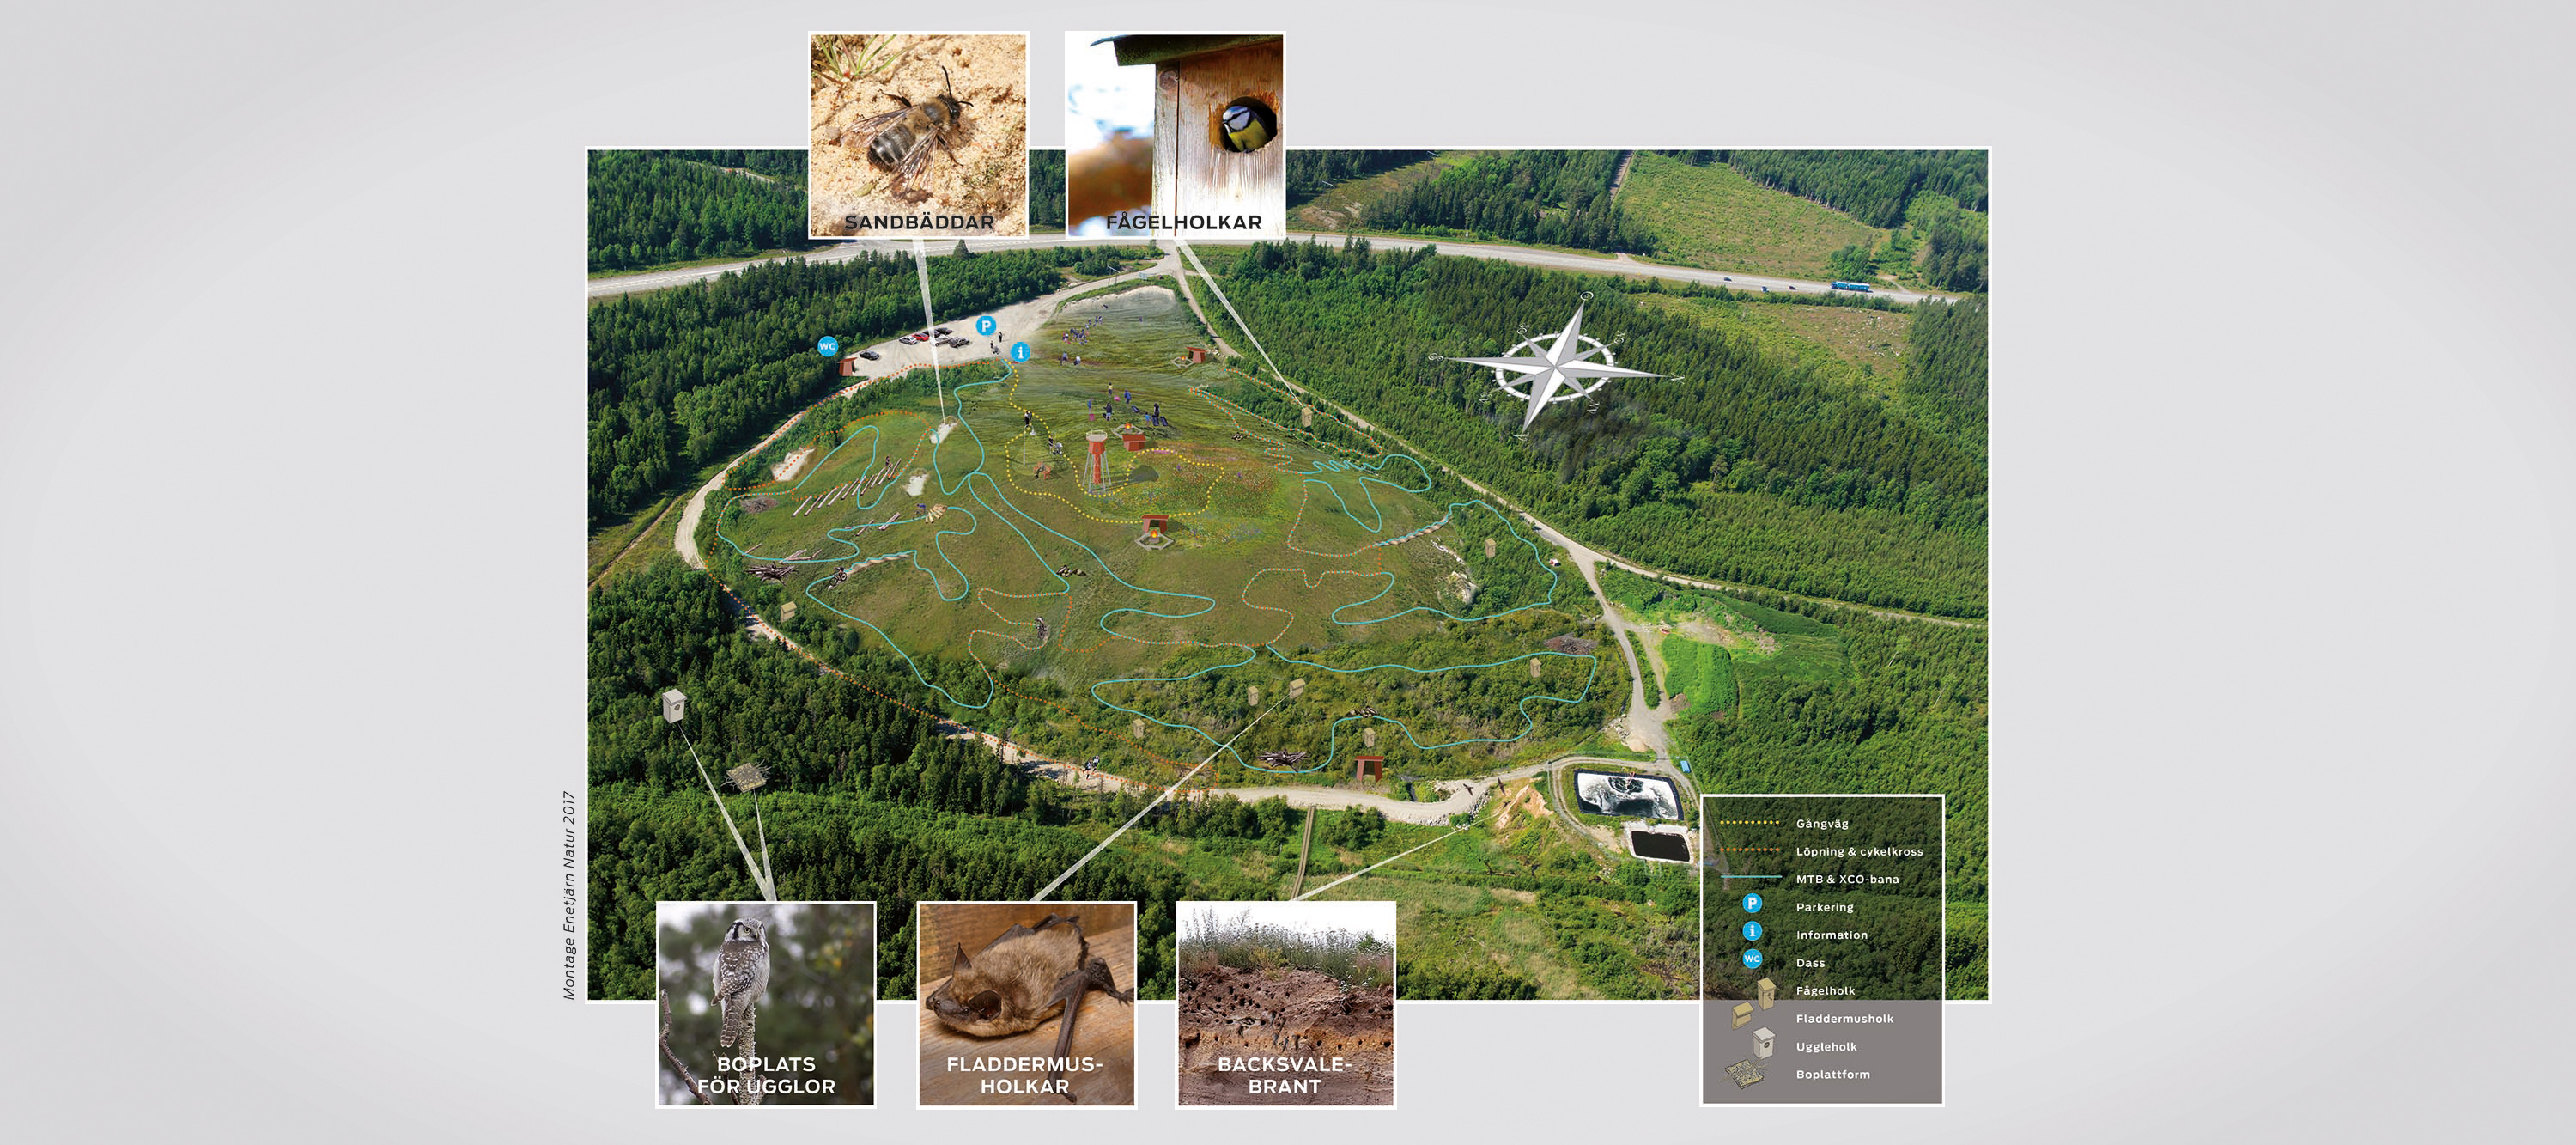 From industrial landfill to nature area with animals and plants